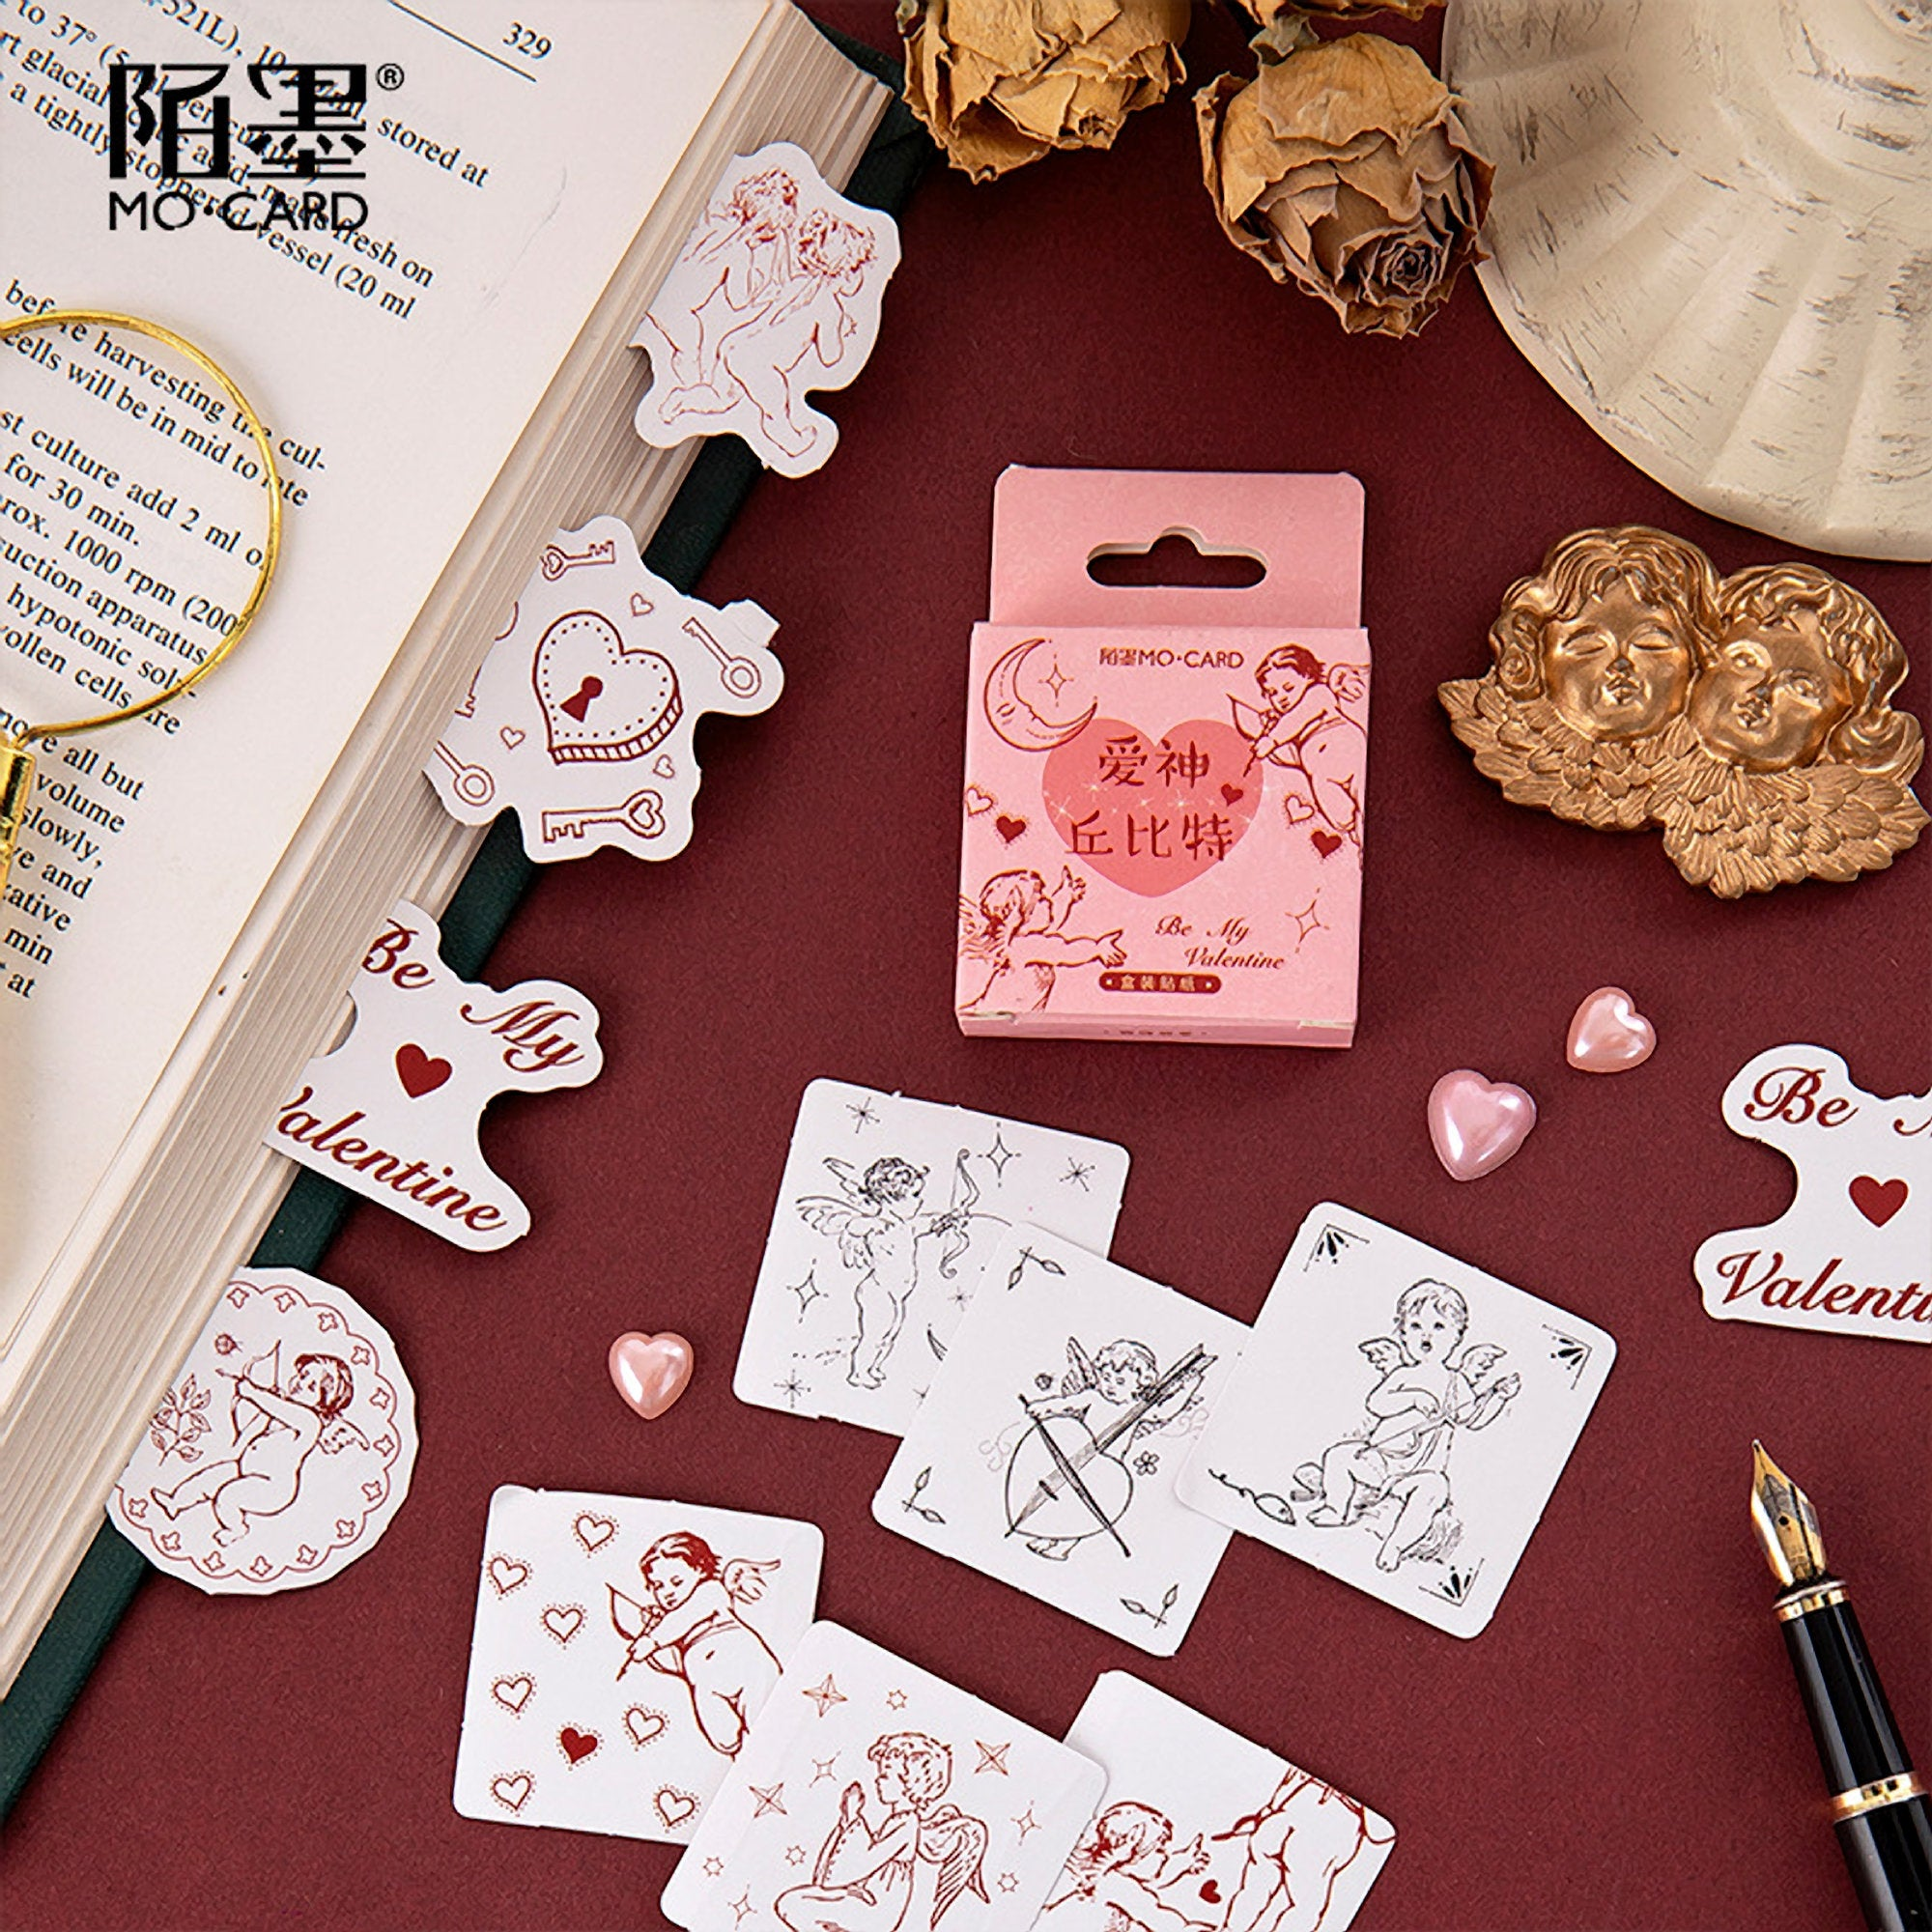 Premium Die-Cut Love Hearts Cupid Lovers Vintage Love Stickers - The Stationery Life!